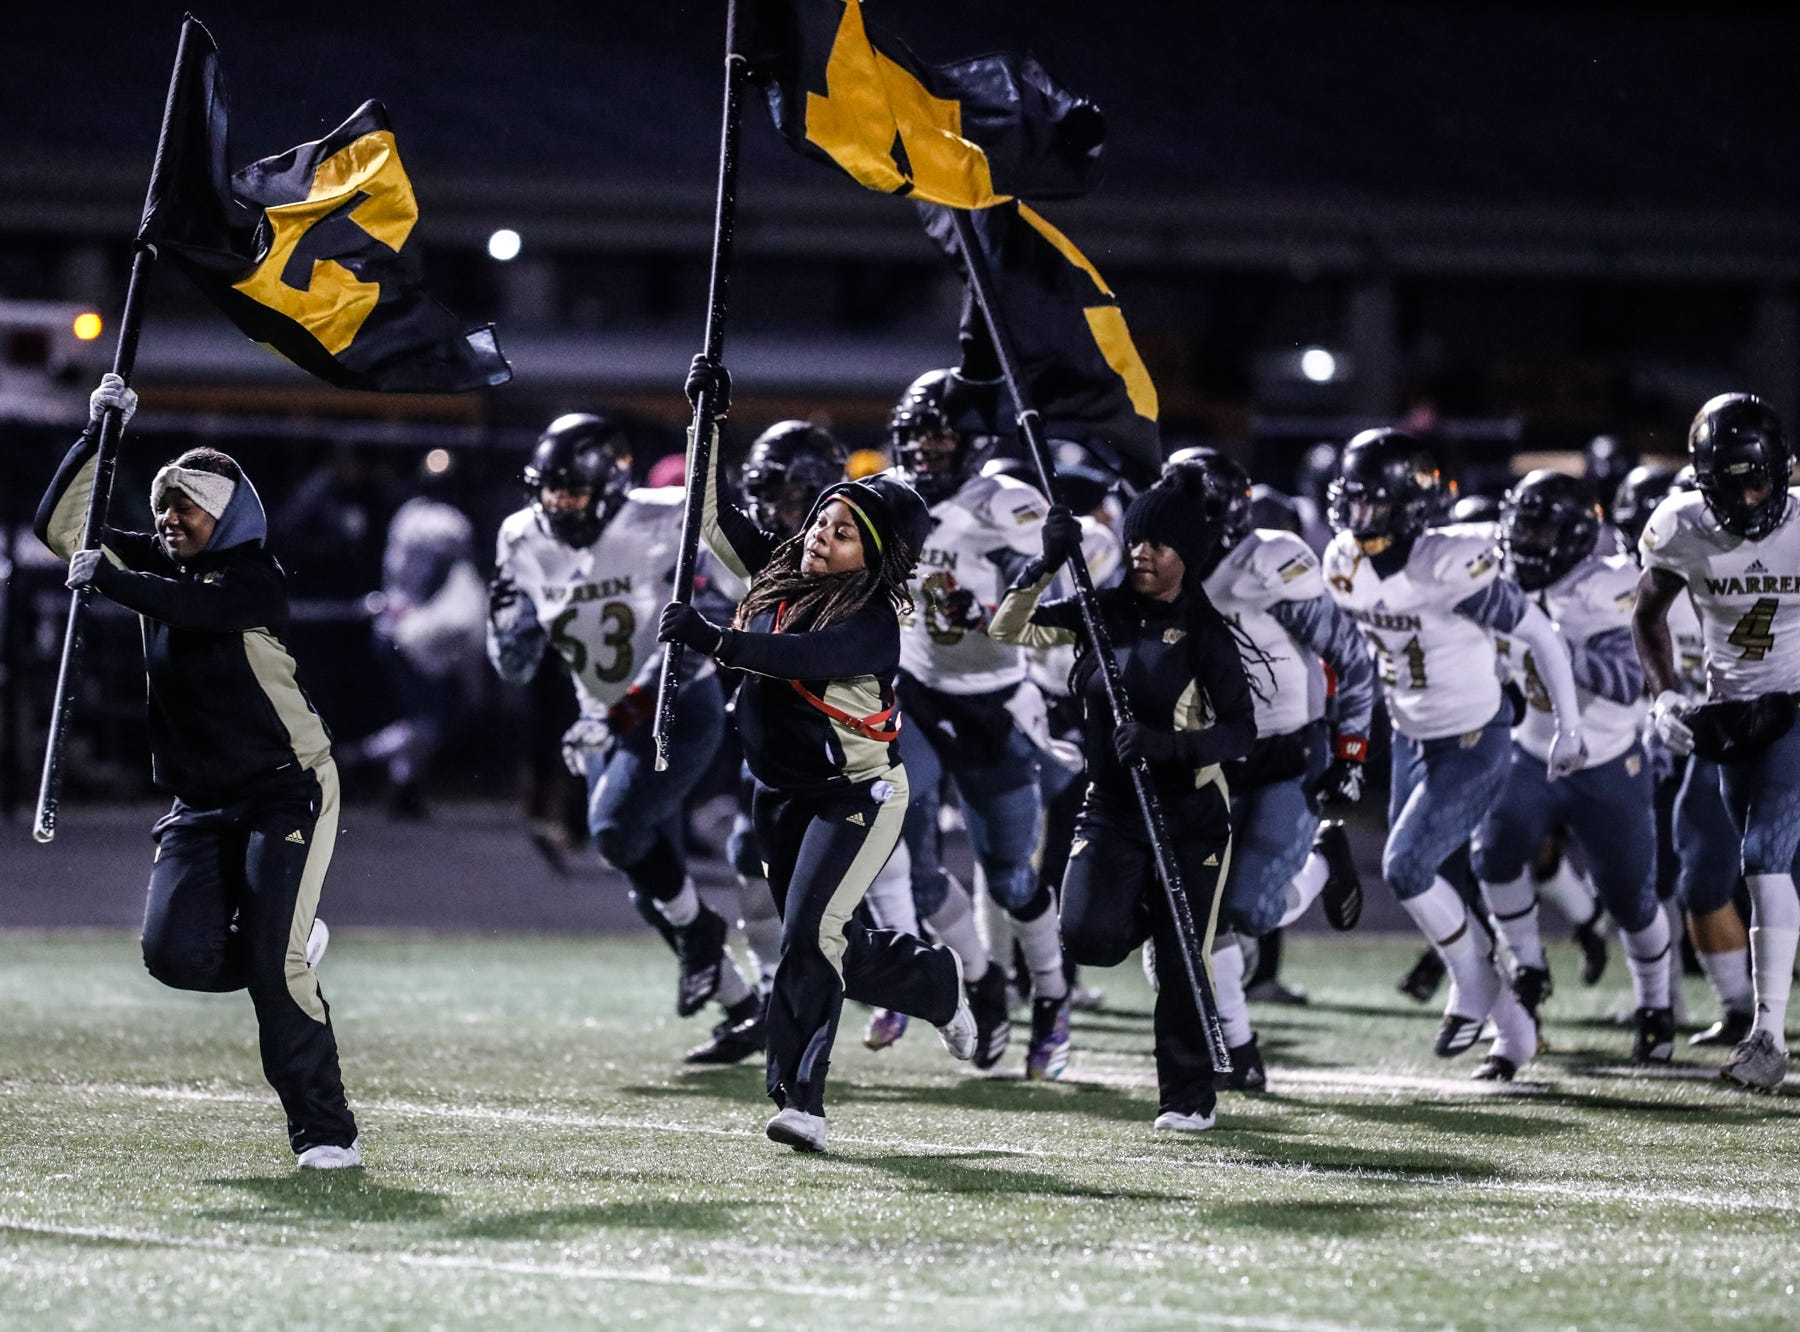 The Warren Central High School Warriors varsity football team takes the field for a regional finals game against the North Central High School Panthers at North Central High School on Friday, Nov. 9, 2018.